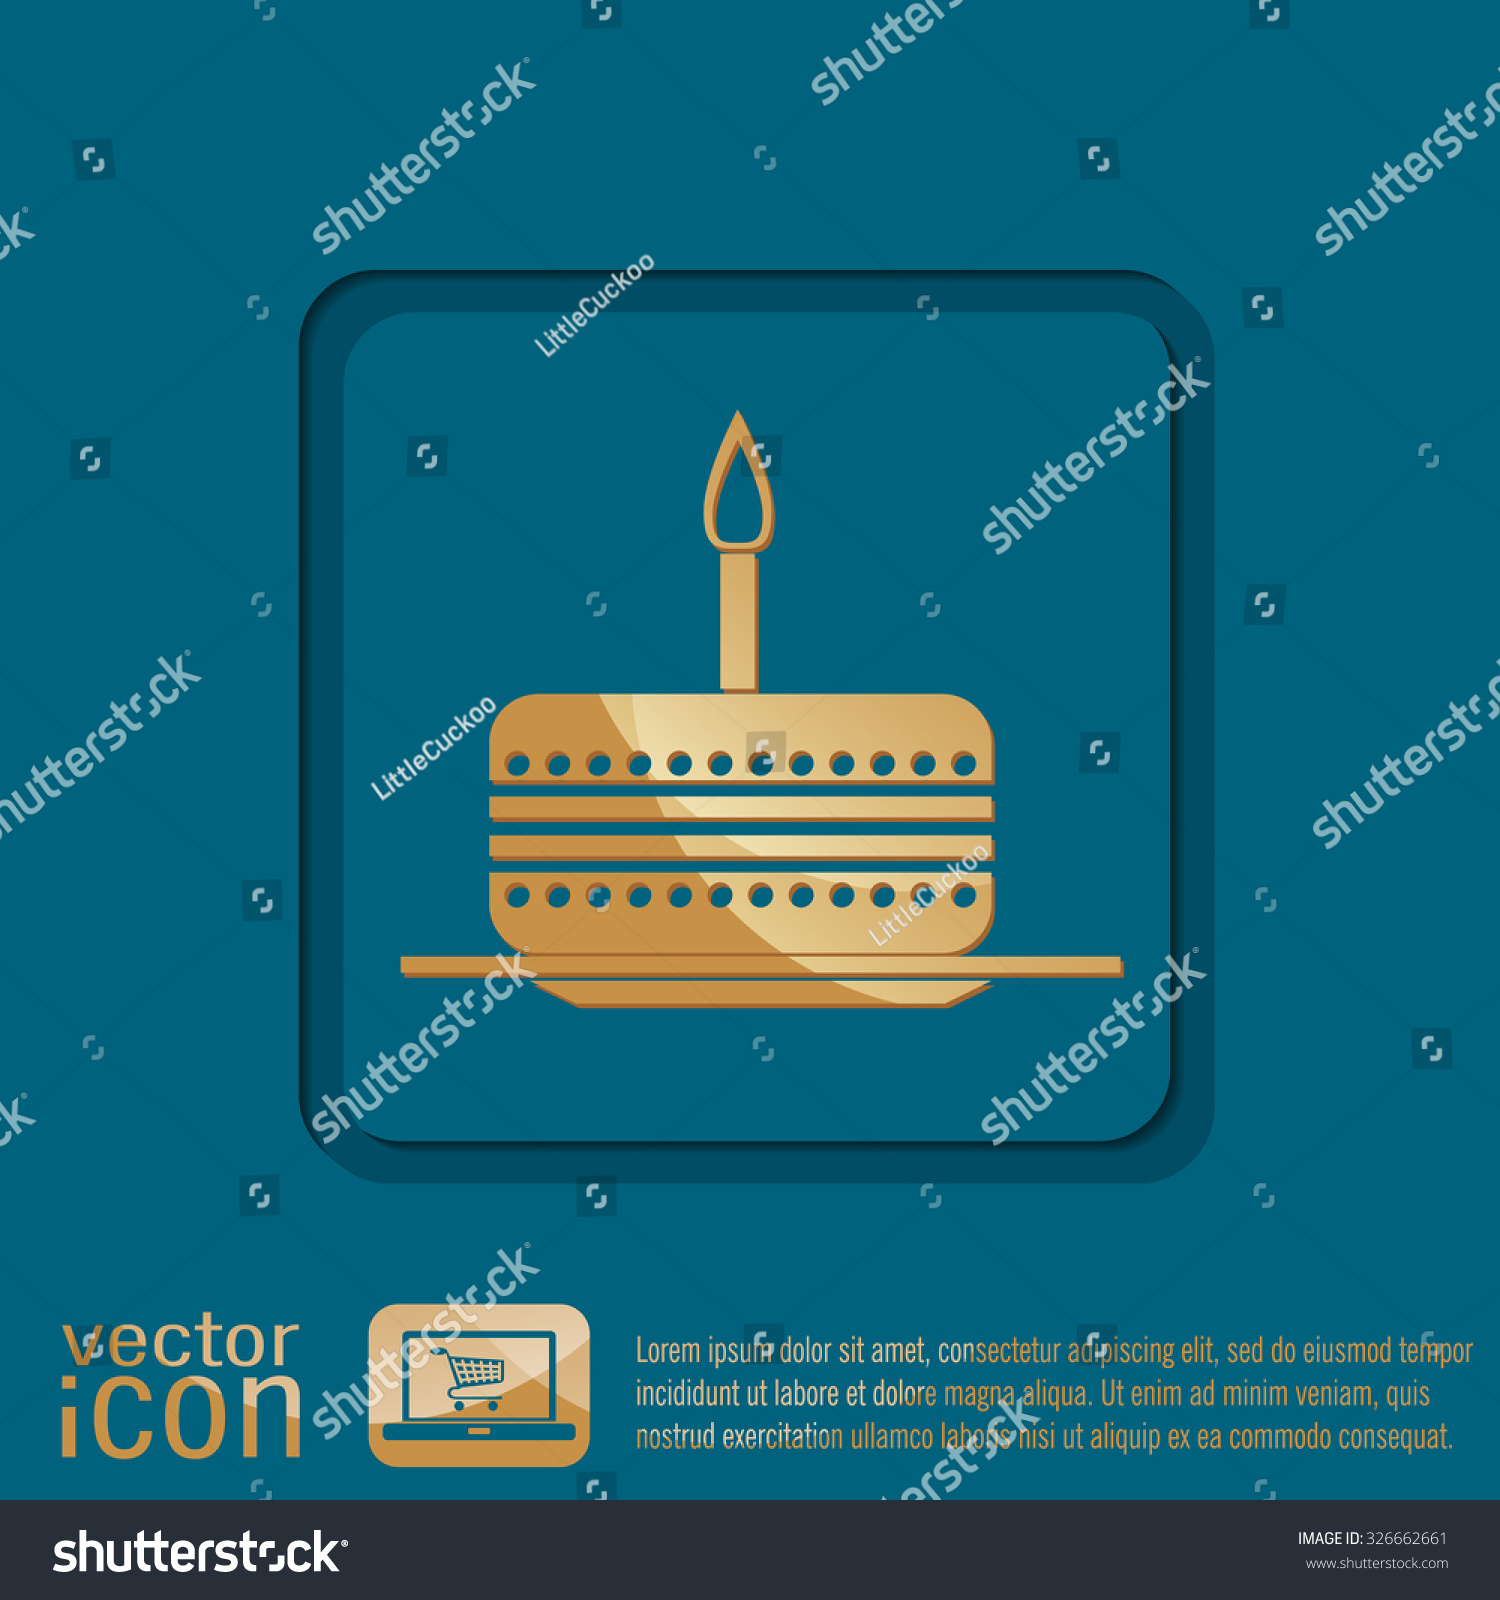 Birthday Cake Symbol For Twitter Image Inspiration of Cake and